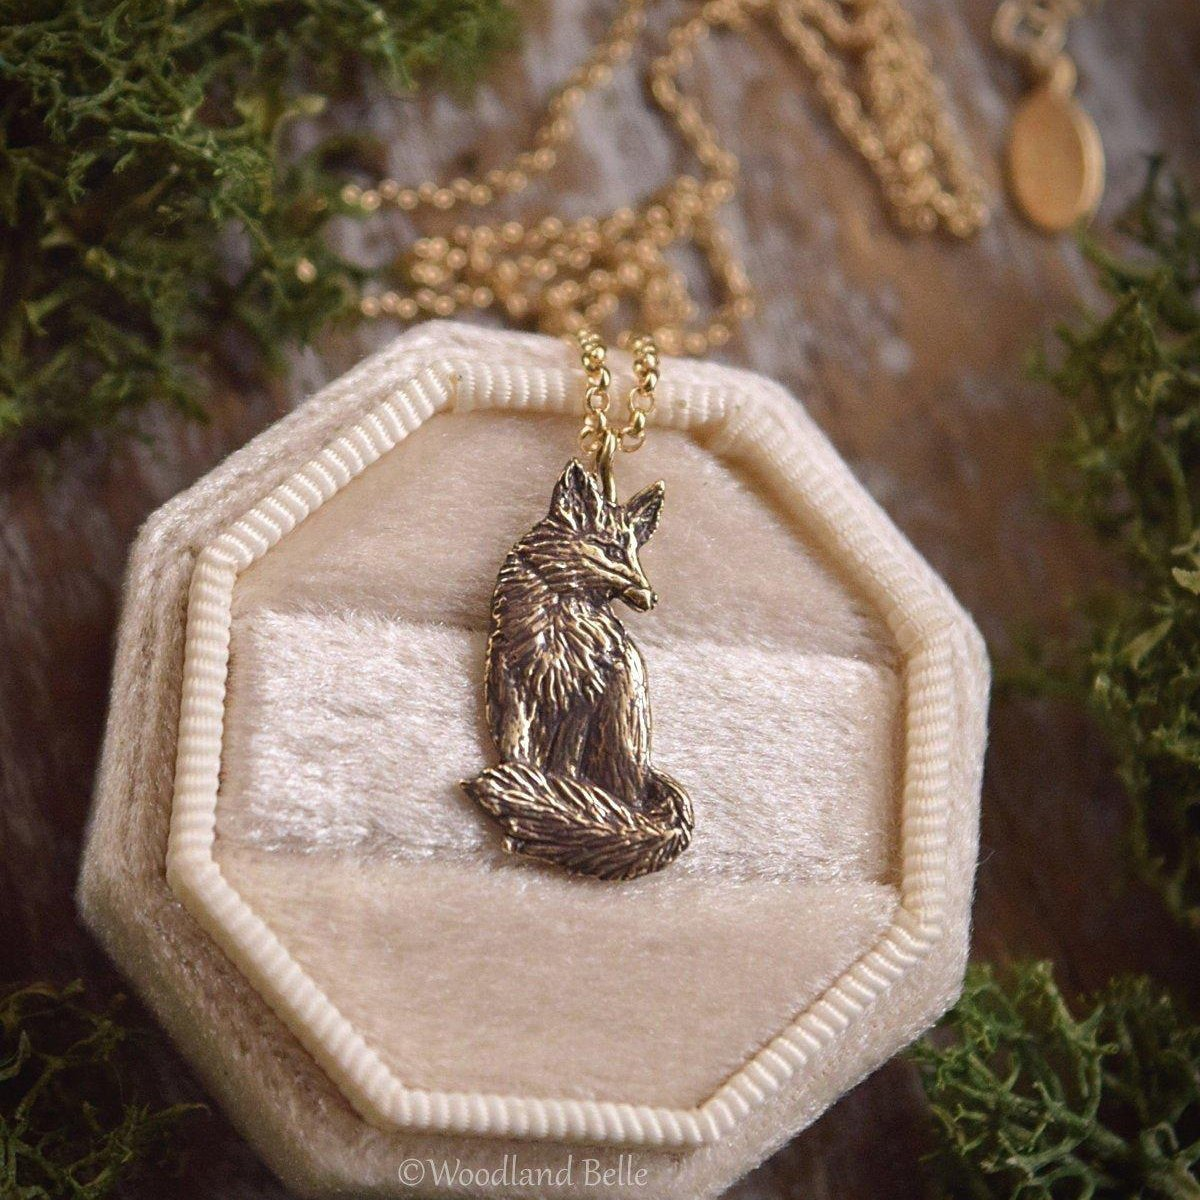 Sitting Fox Necklace - Gold Bronze Red Fox Pendant - Fox Lover Gift - Small, Dainty Animal Charm Necklace - Cottagecore - by Woodland Belle